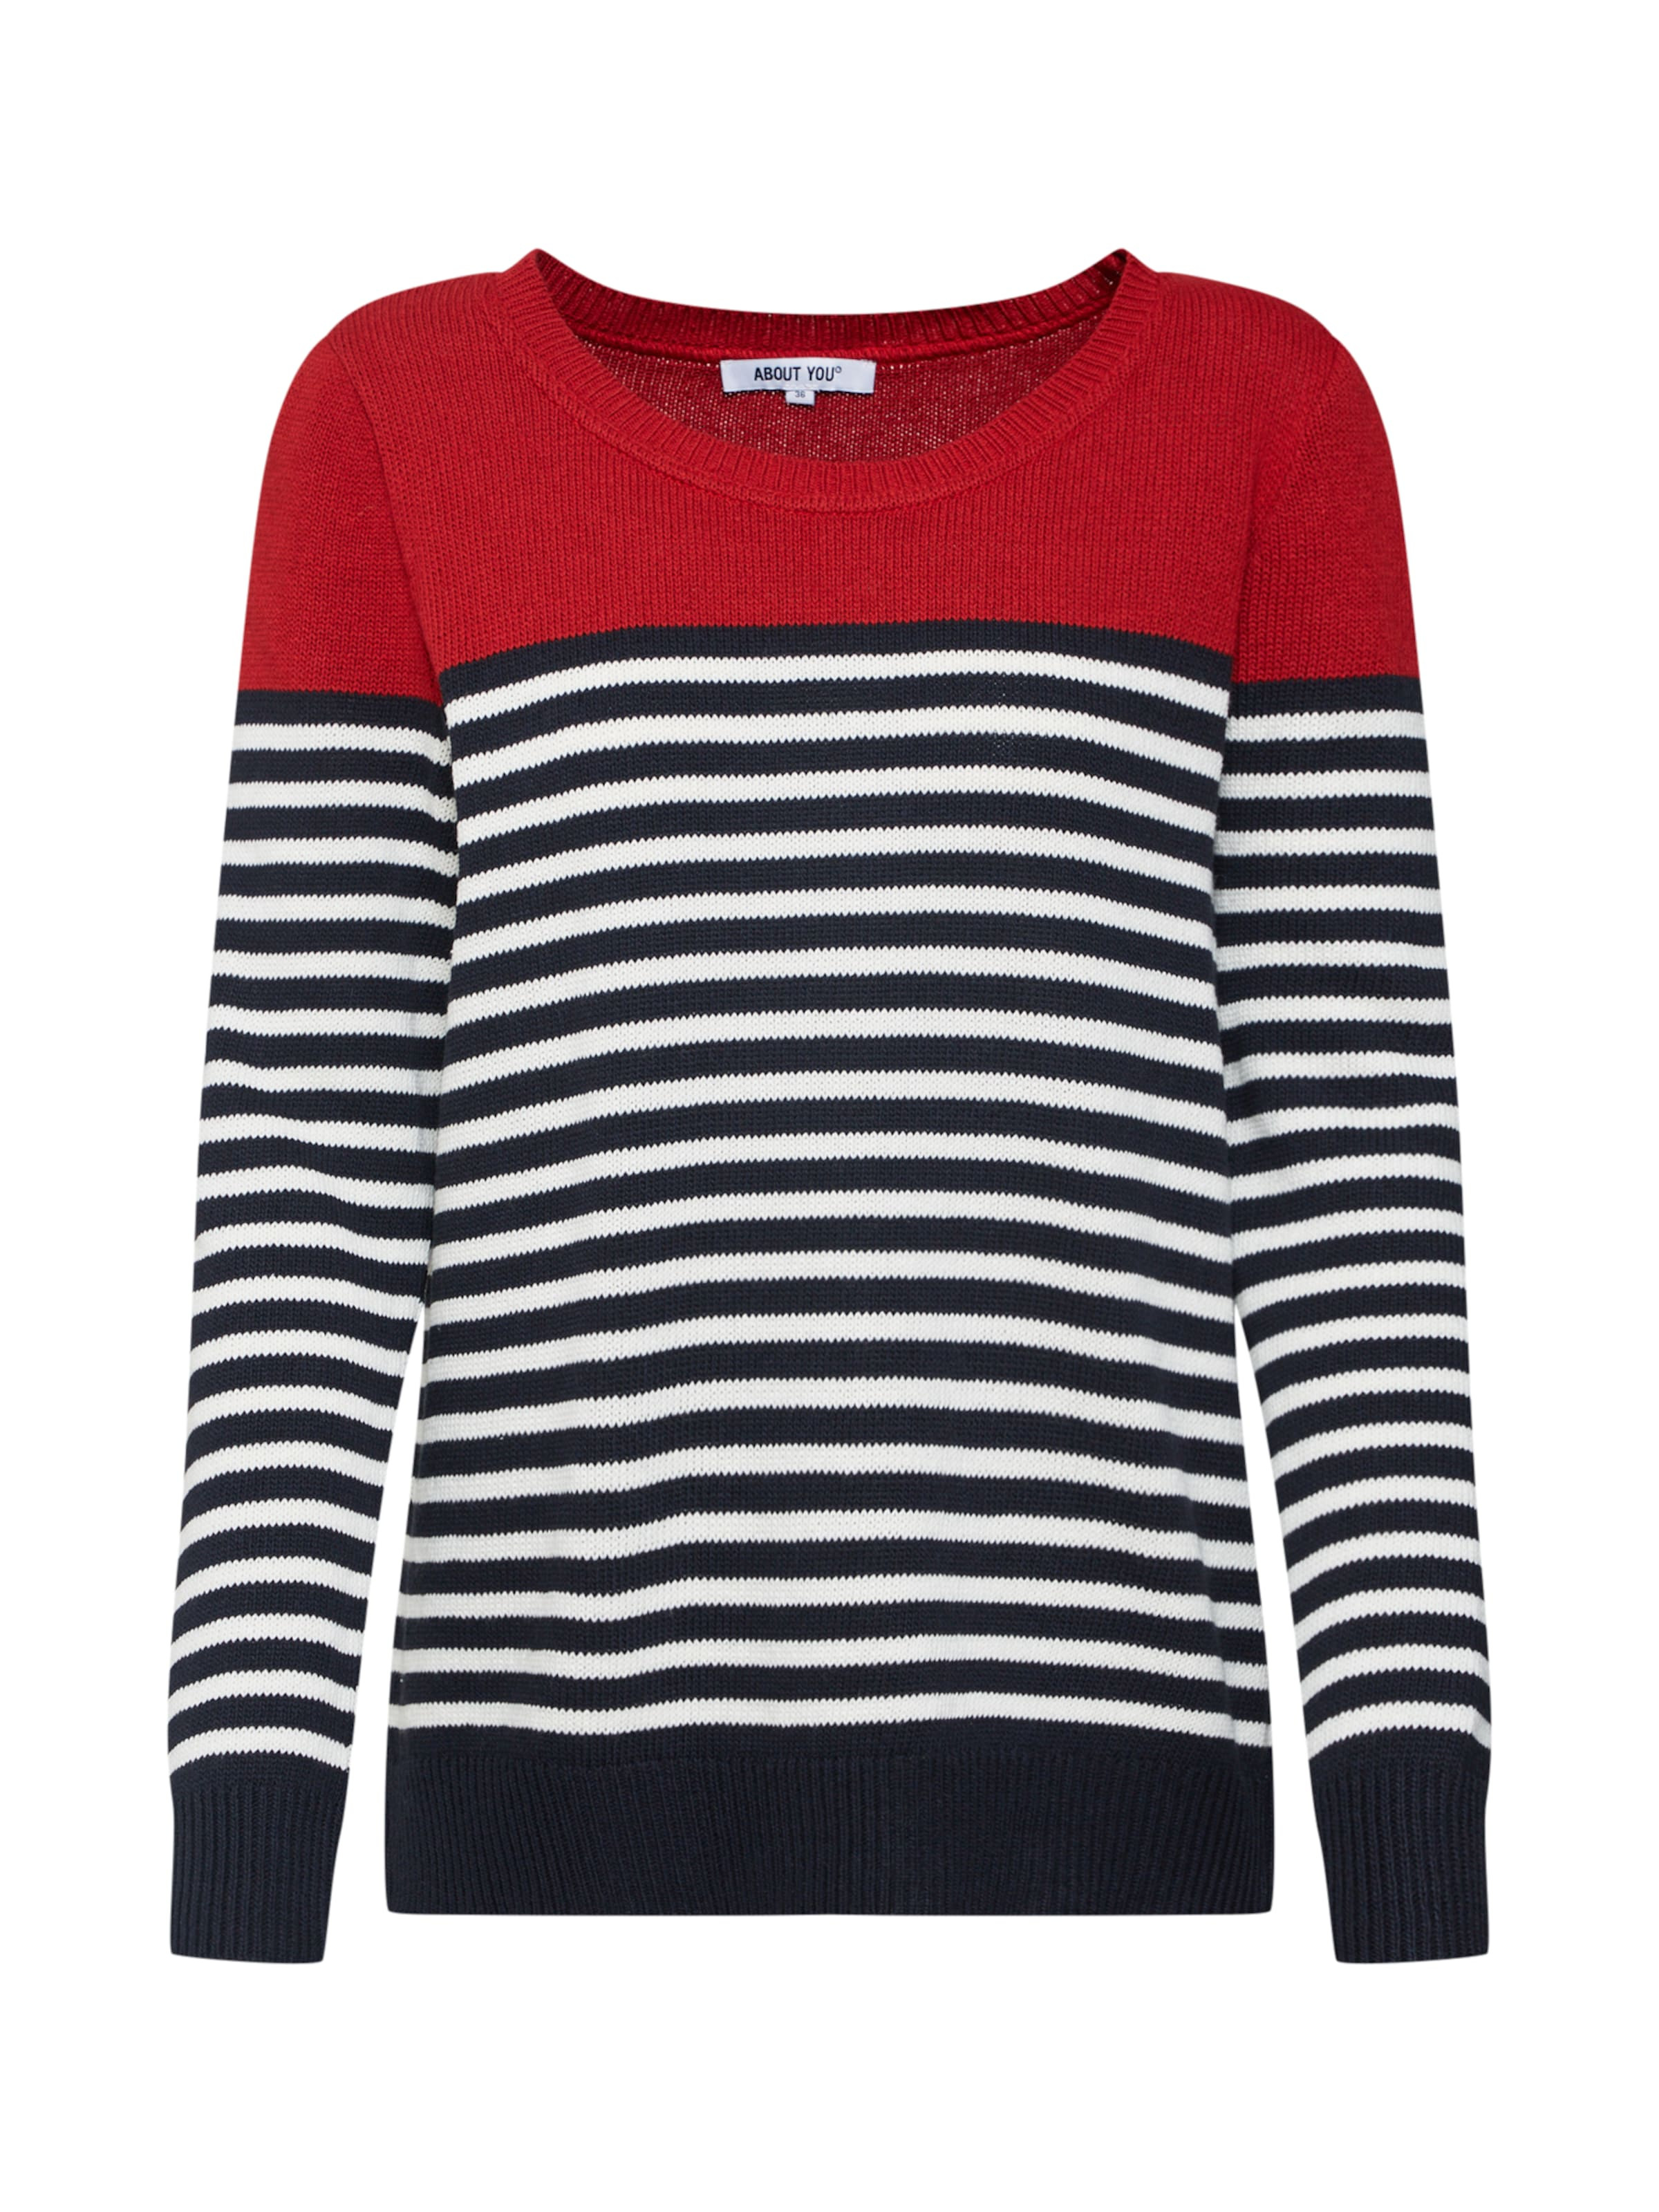 About 'tessa' Wei Pullover You In NavyRot n8NwOPk0X